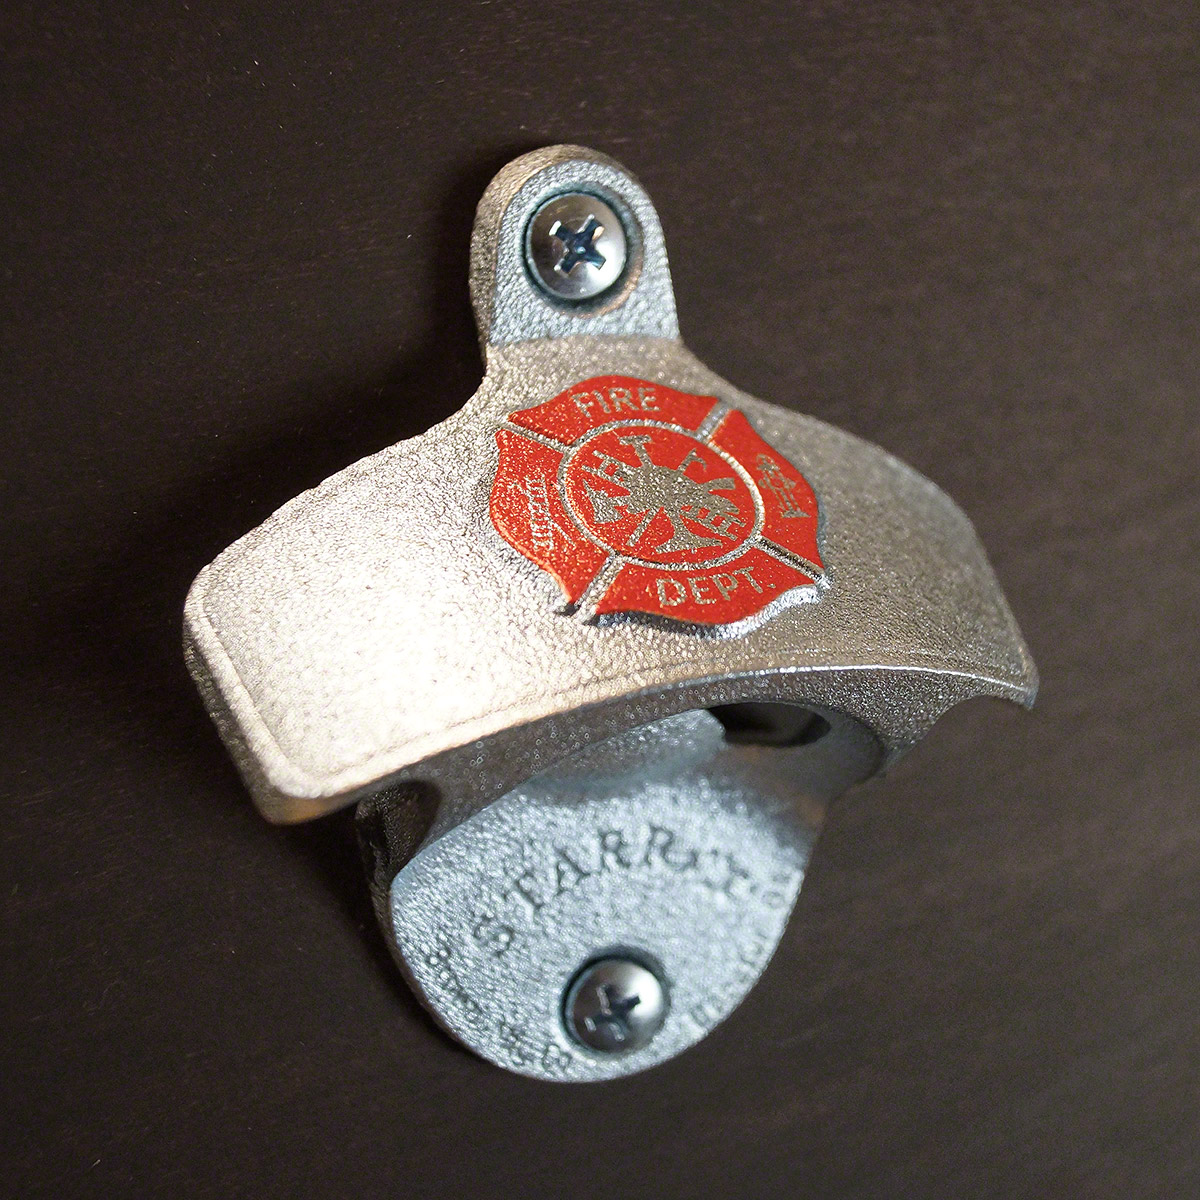 Firefighter Shield Zinc Plated Wall Bottle Opener